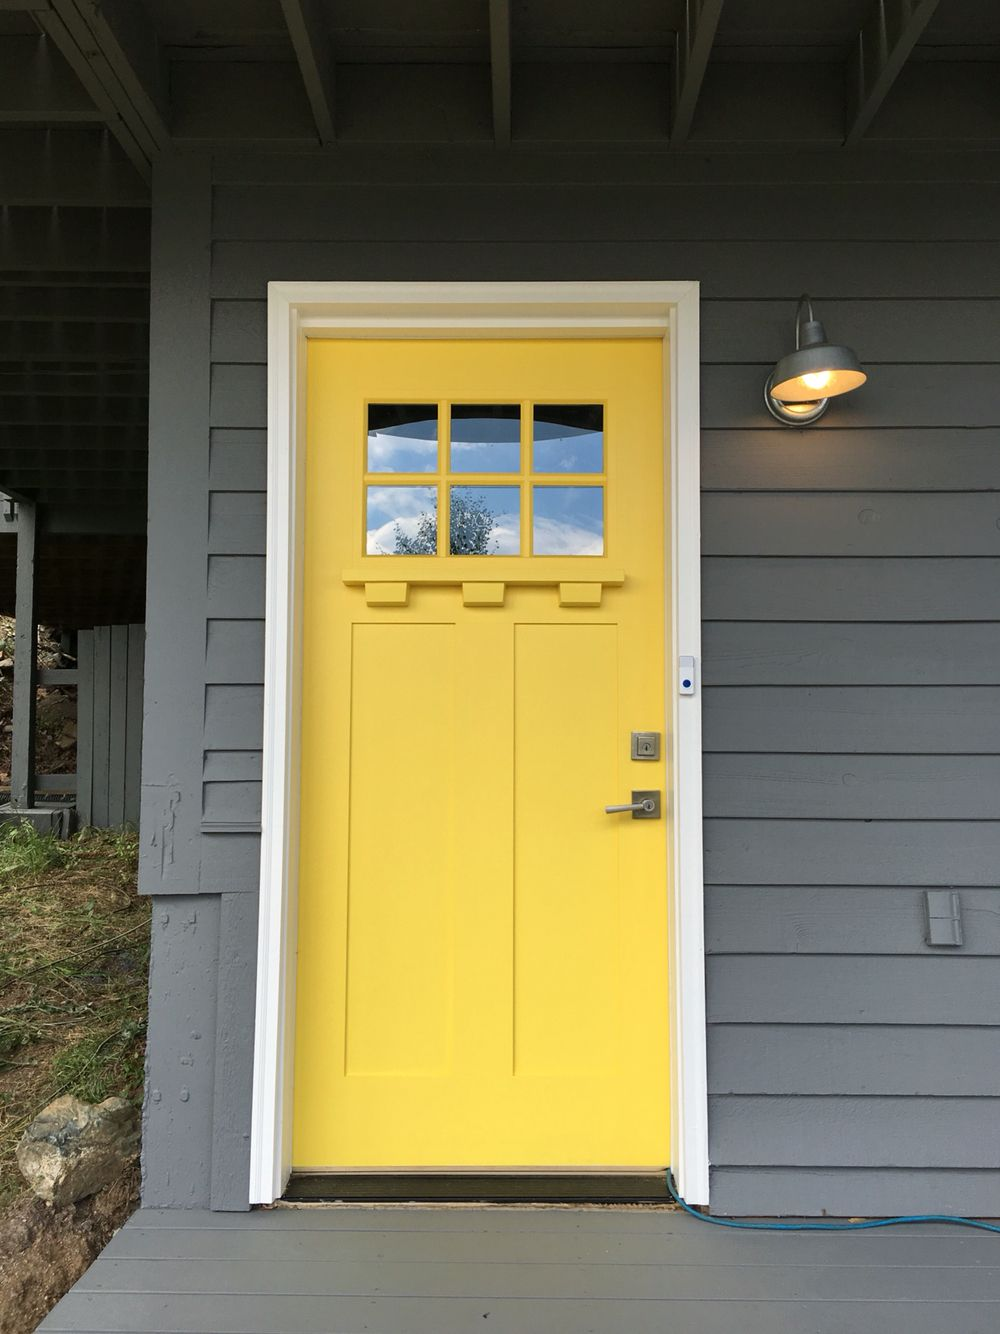 Sunny yellow brightens any entryway and gives me summer vibes